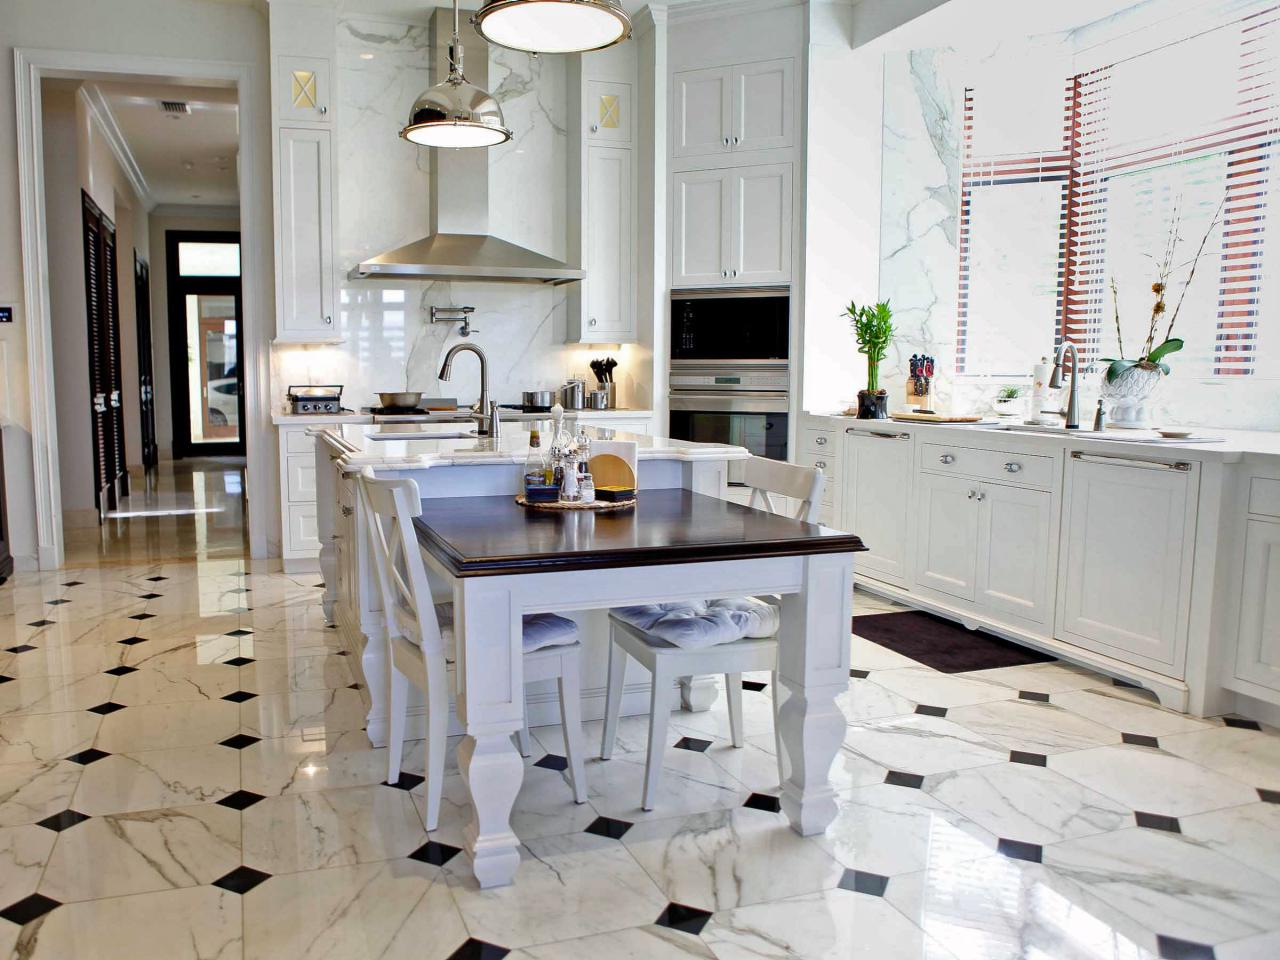 Ceramic tile floor in the kitchen for Black floor tiles for kitchen